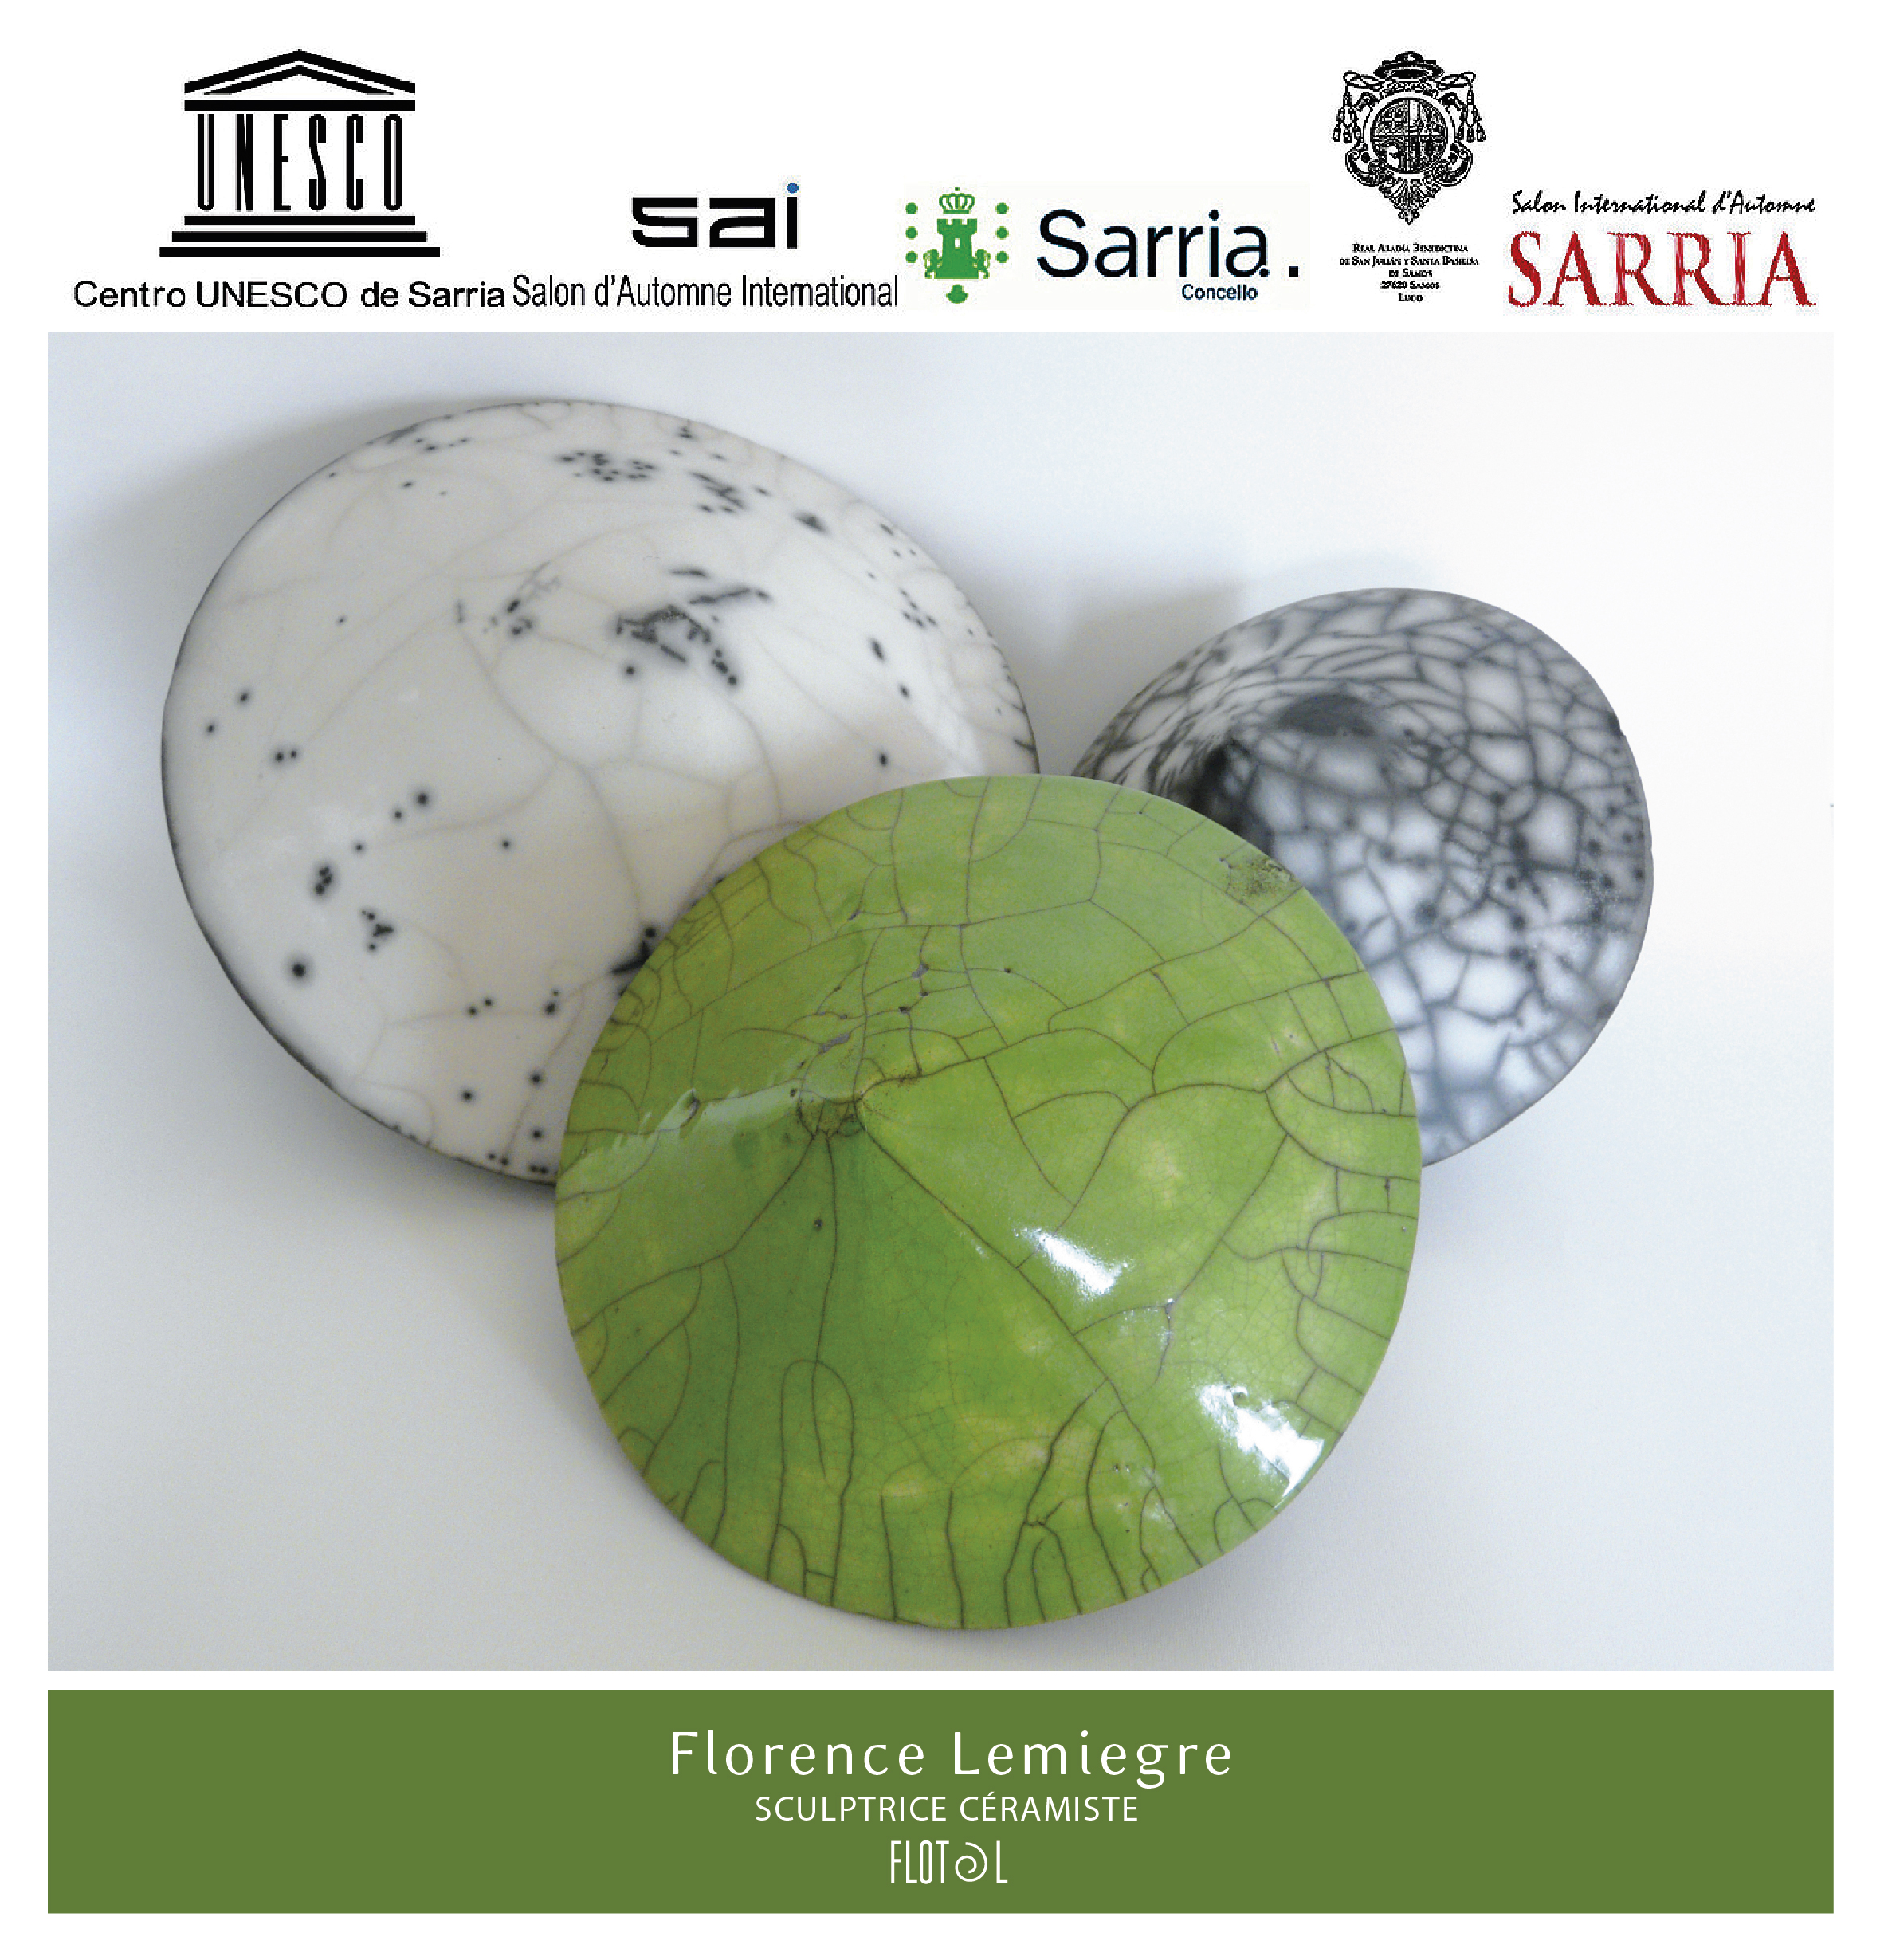 Salon international d'art contemporain de Sarria - 2015- Espagne - Sculptures céramique de Florence Lemiegre